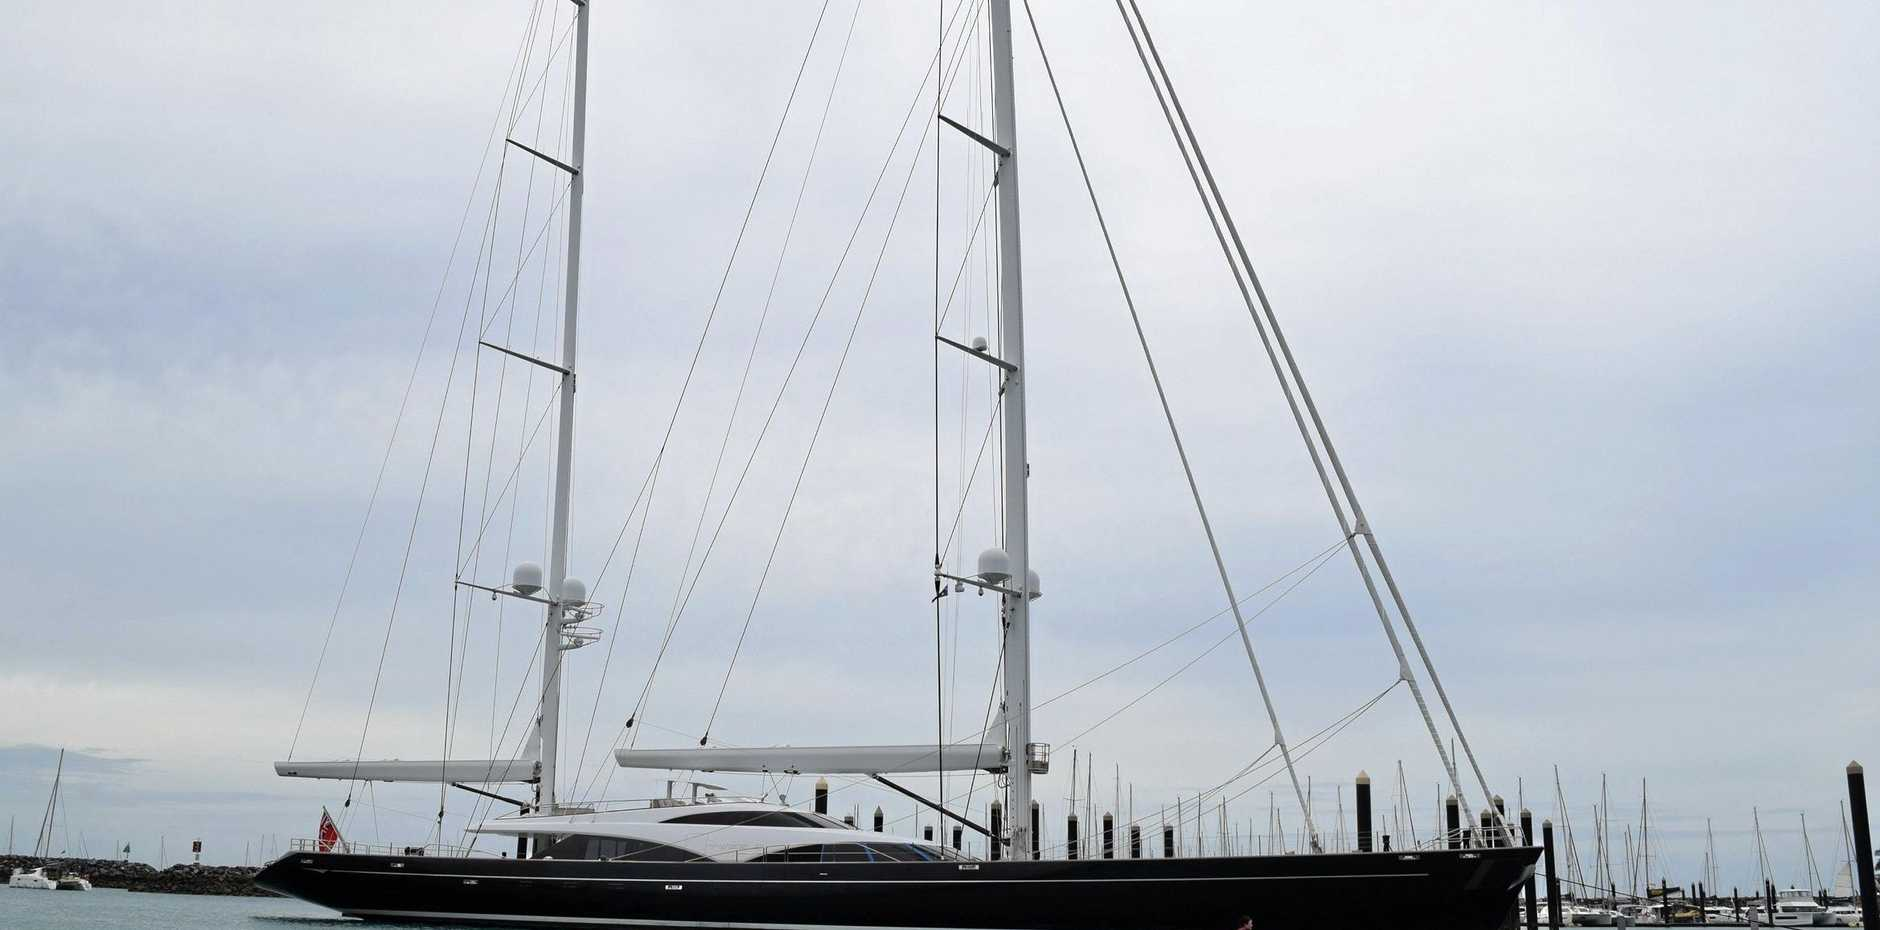 Superyacht Twizzle arrives in the Abell Point Marina on Monday, April 29.